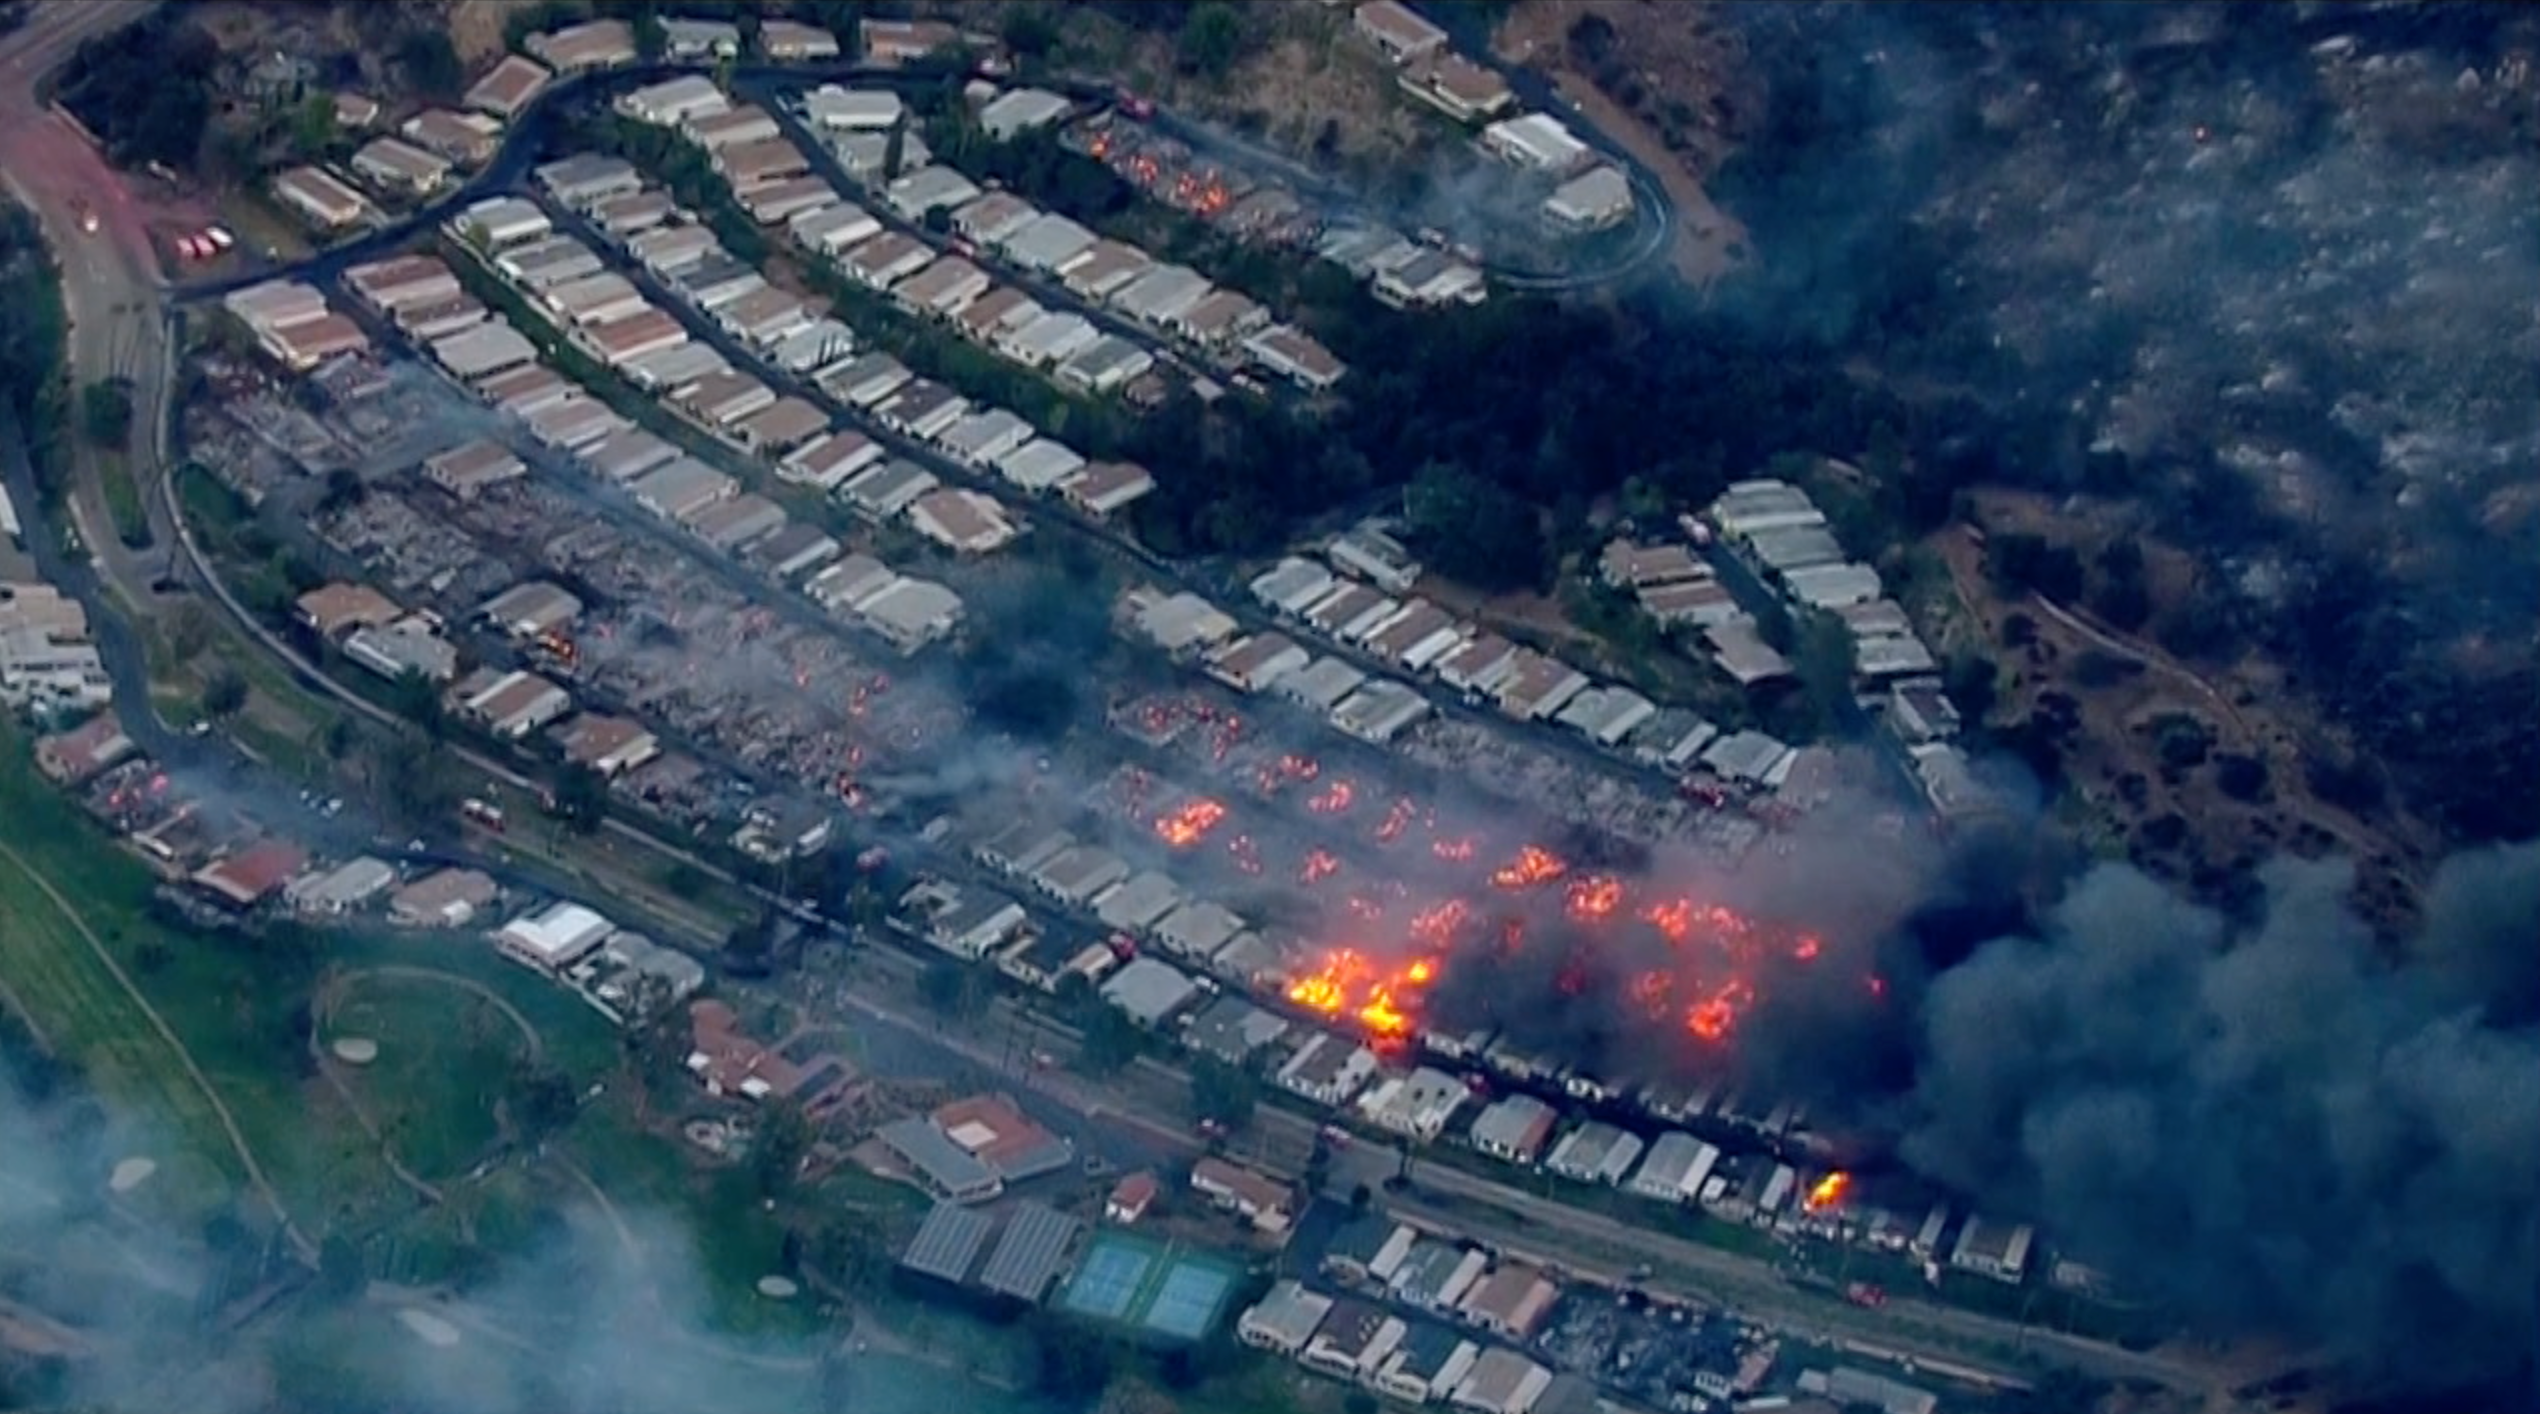 Photos Showing Before And After Lilac Fire Destroyed San Diego